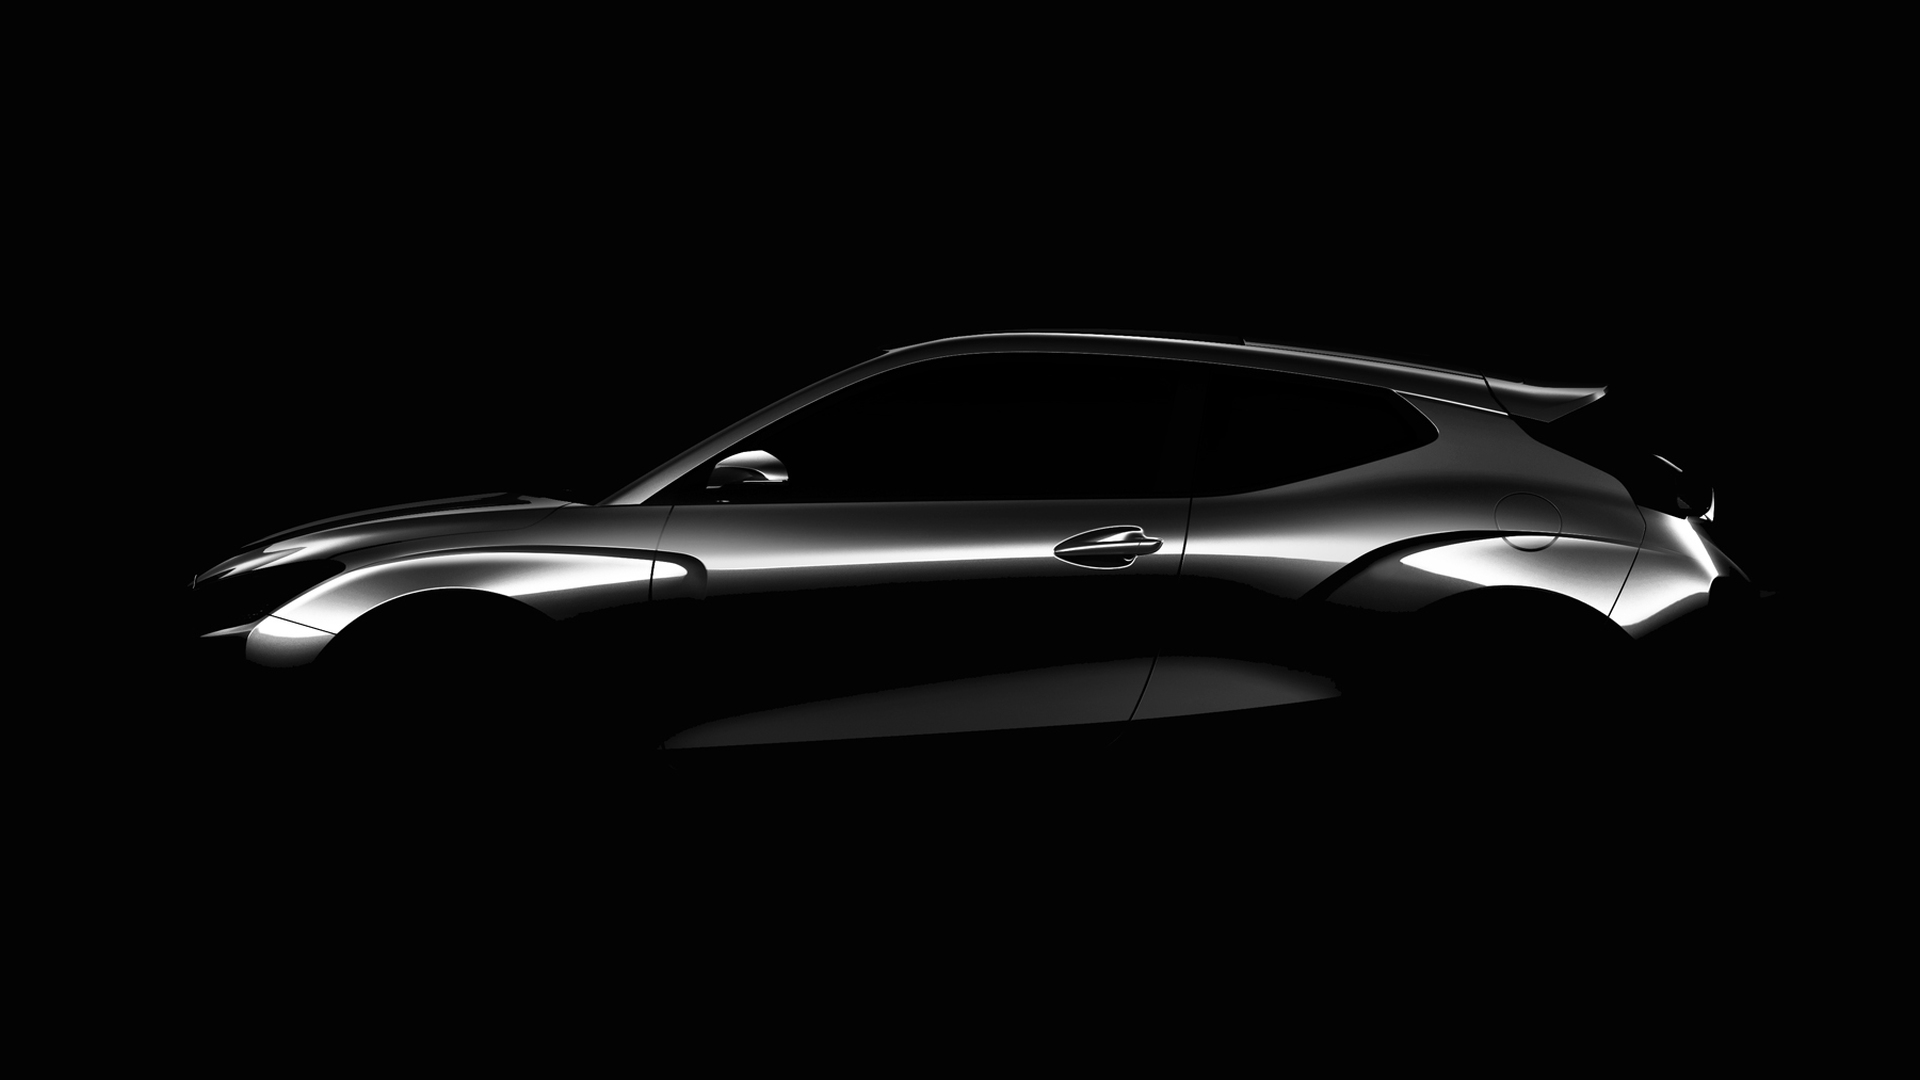 Teaser for 2019 Hyundai Veloster debuting at 2018 North American International Auto Show